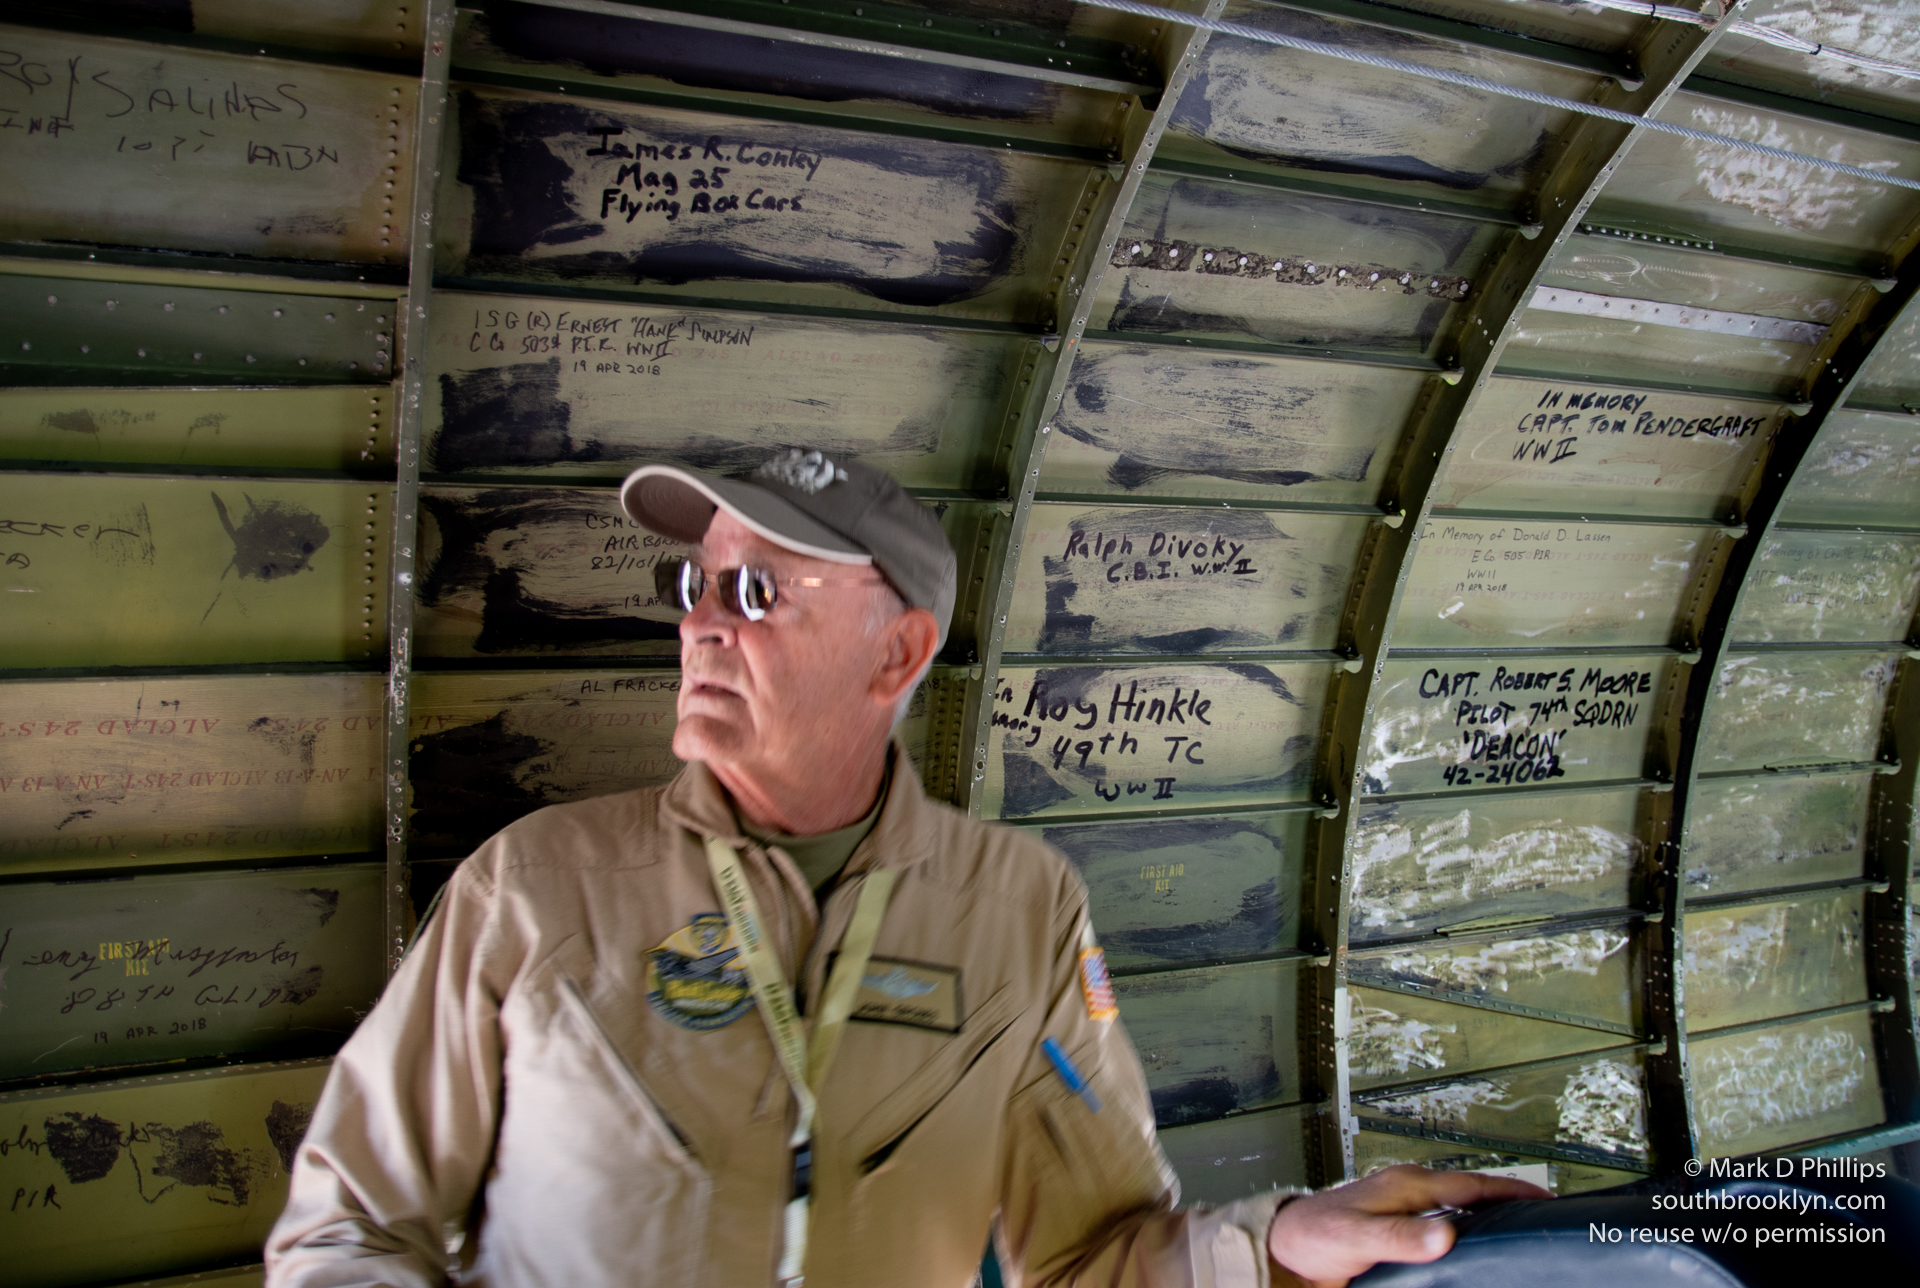 Eric Zipkin, Director of Operations and Pilot of Placid Lassie, with tributes on the interior of the c47. ©Mark D Phillips